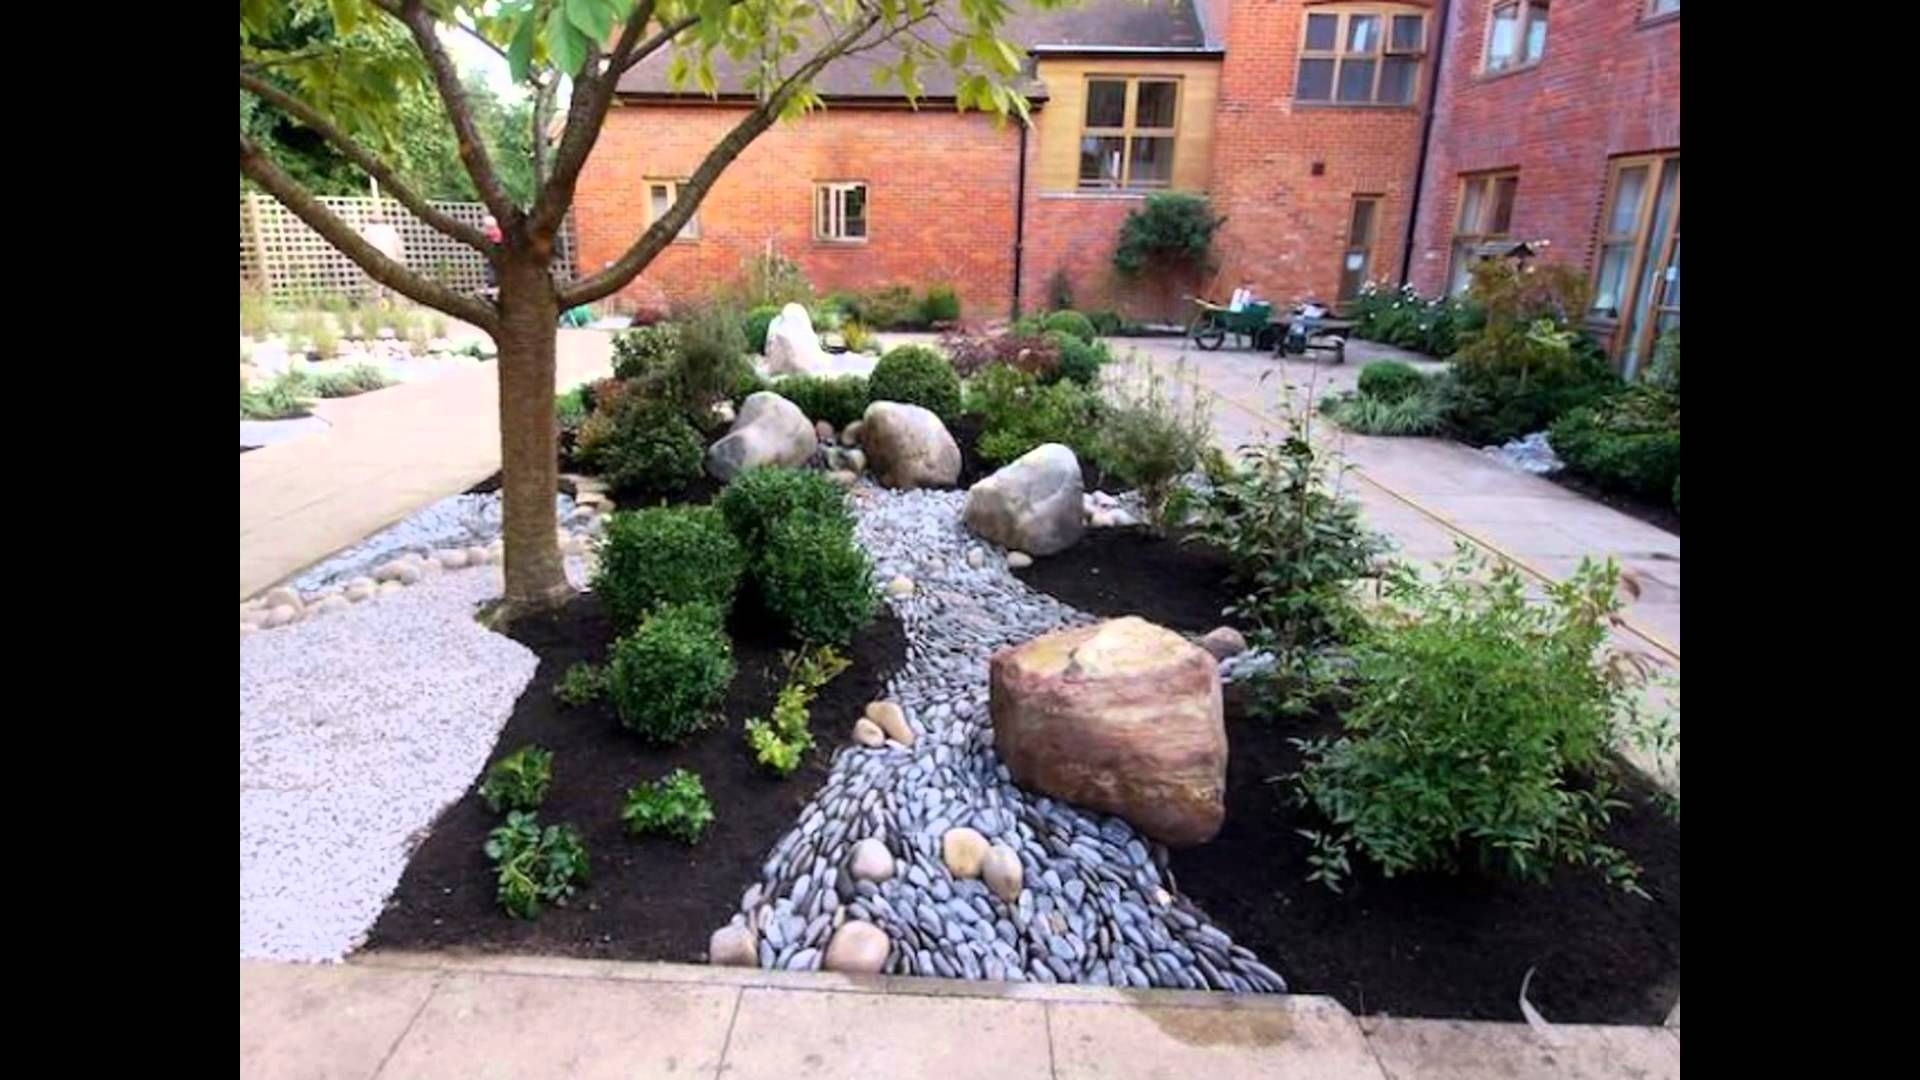 Japanese Garden Design Ideas To Style Up Your Backyard - Youtube for Japanese Garden Ideas For Backyard